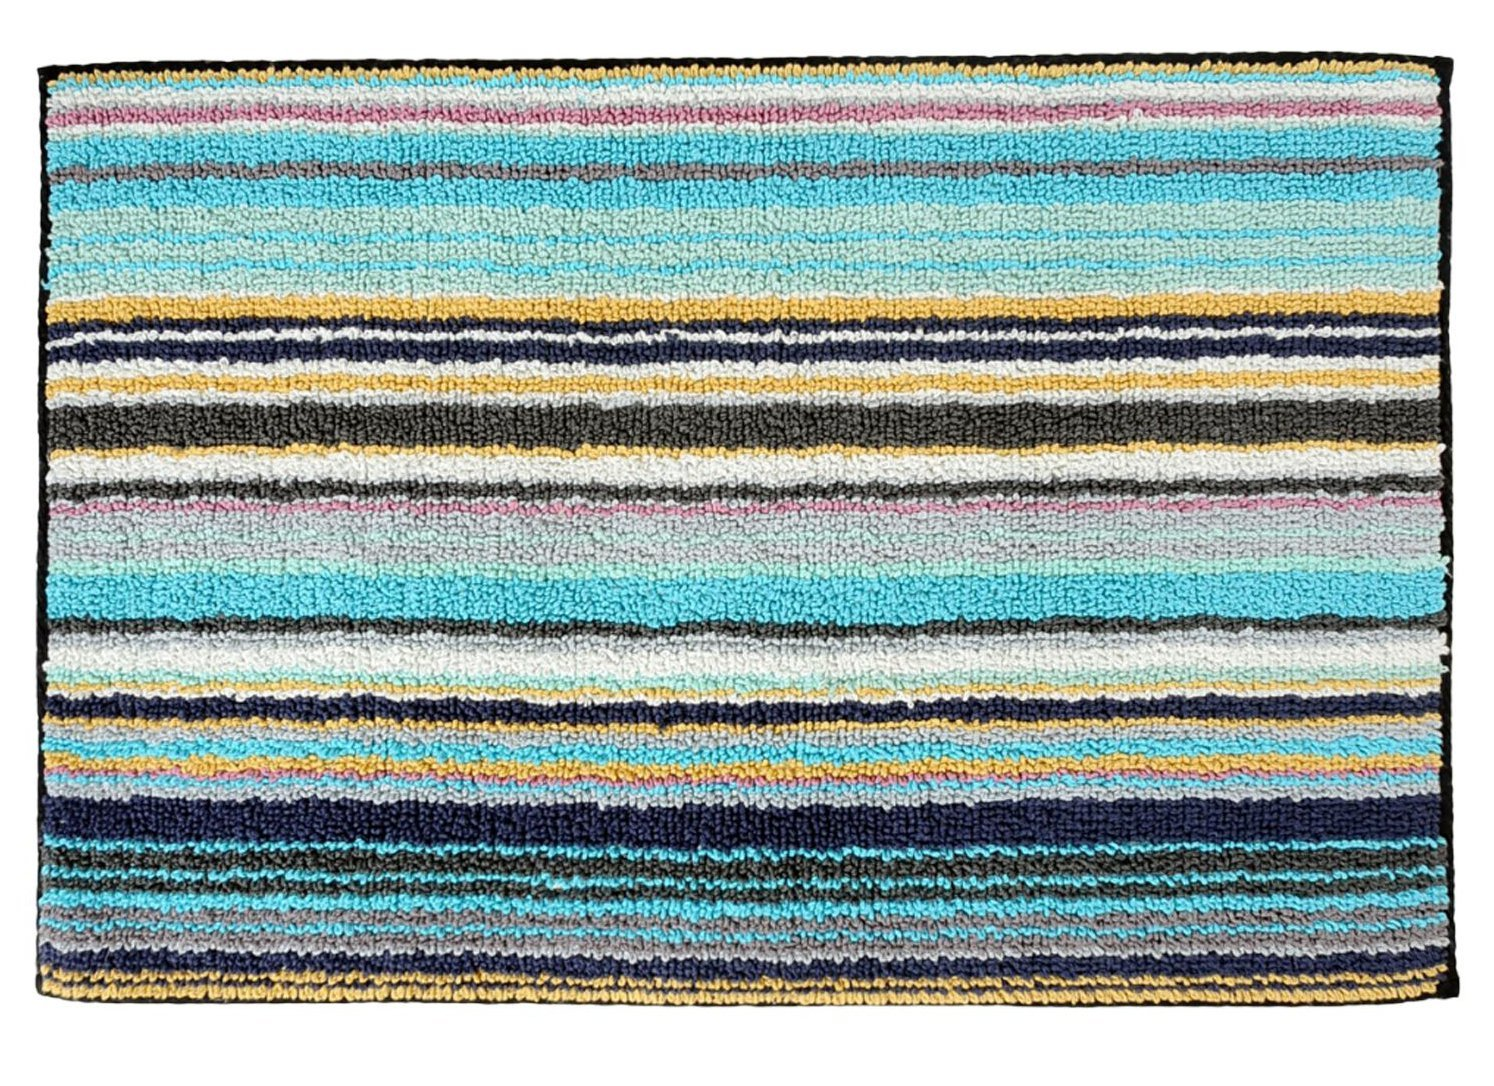 Missoni Jazel Striped Bath Rug Color 170 Blue Green Bathmats Rugs Toilet Covers